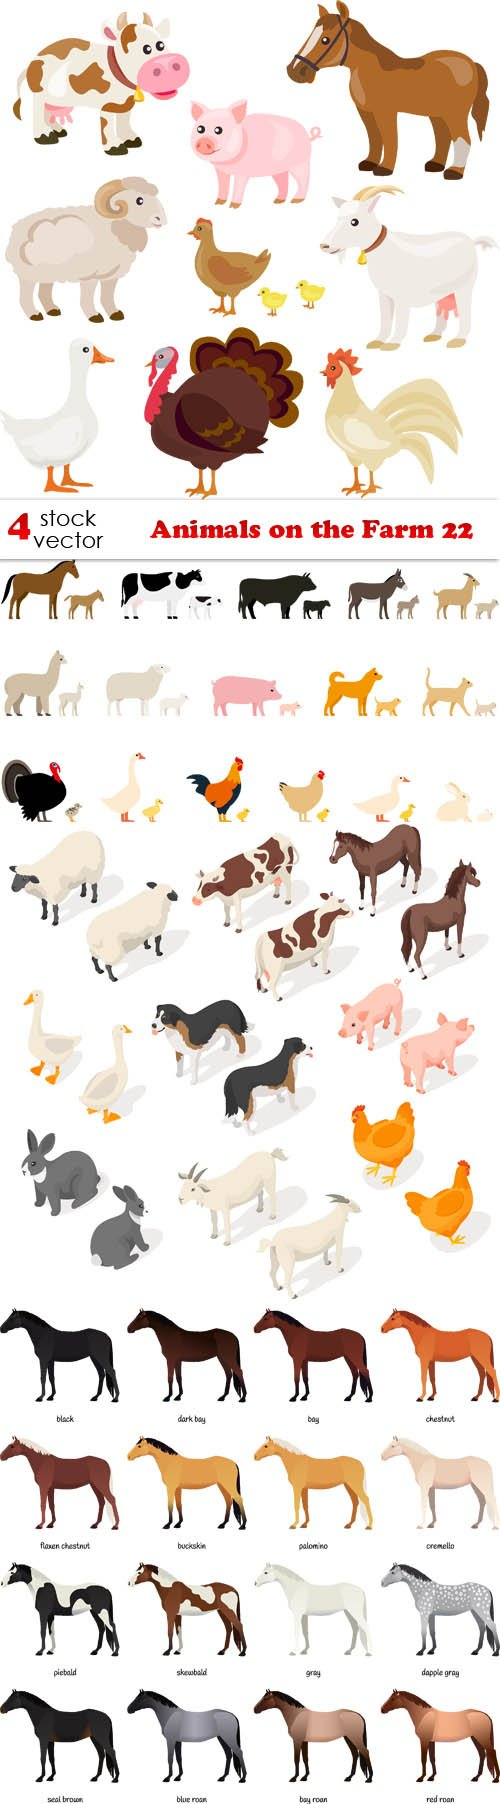 Vectors - Animals on the Farm 22